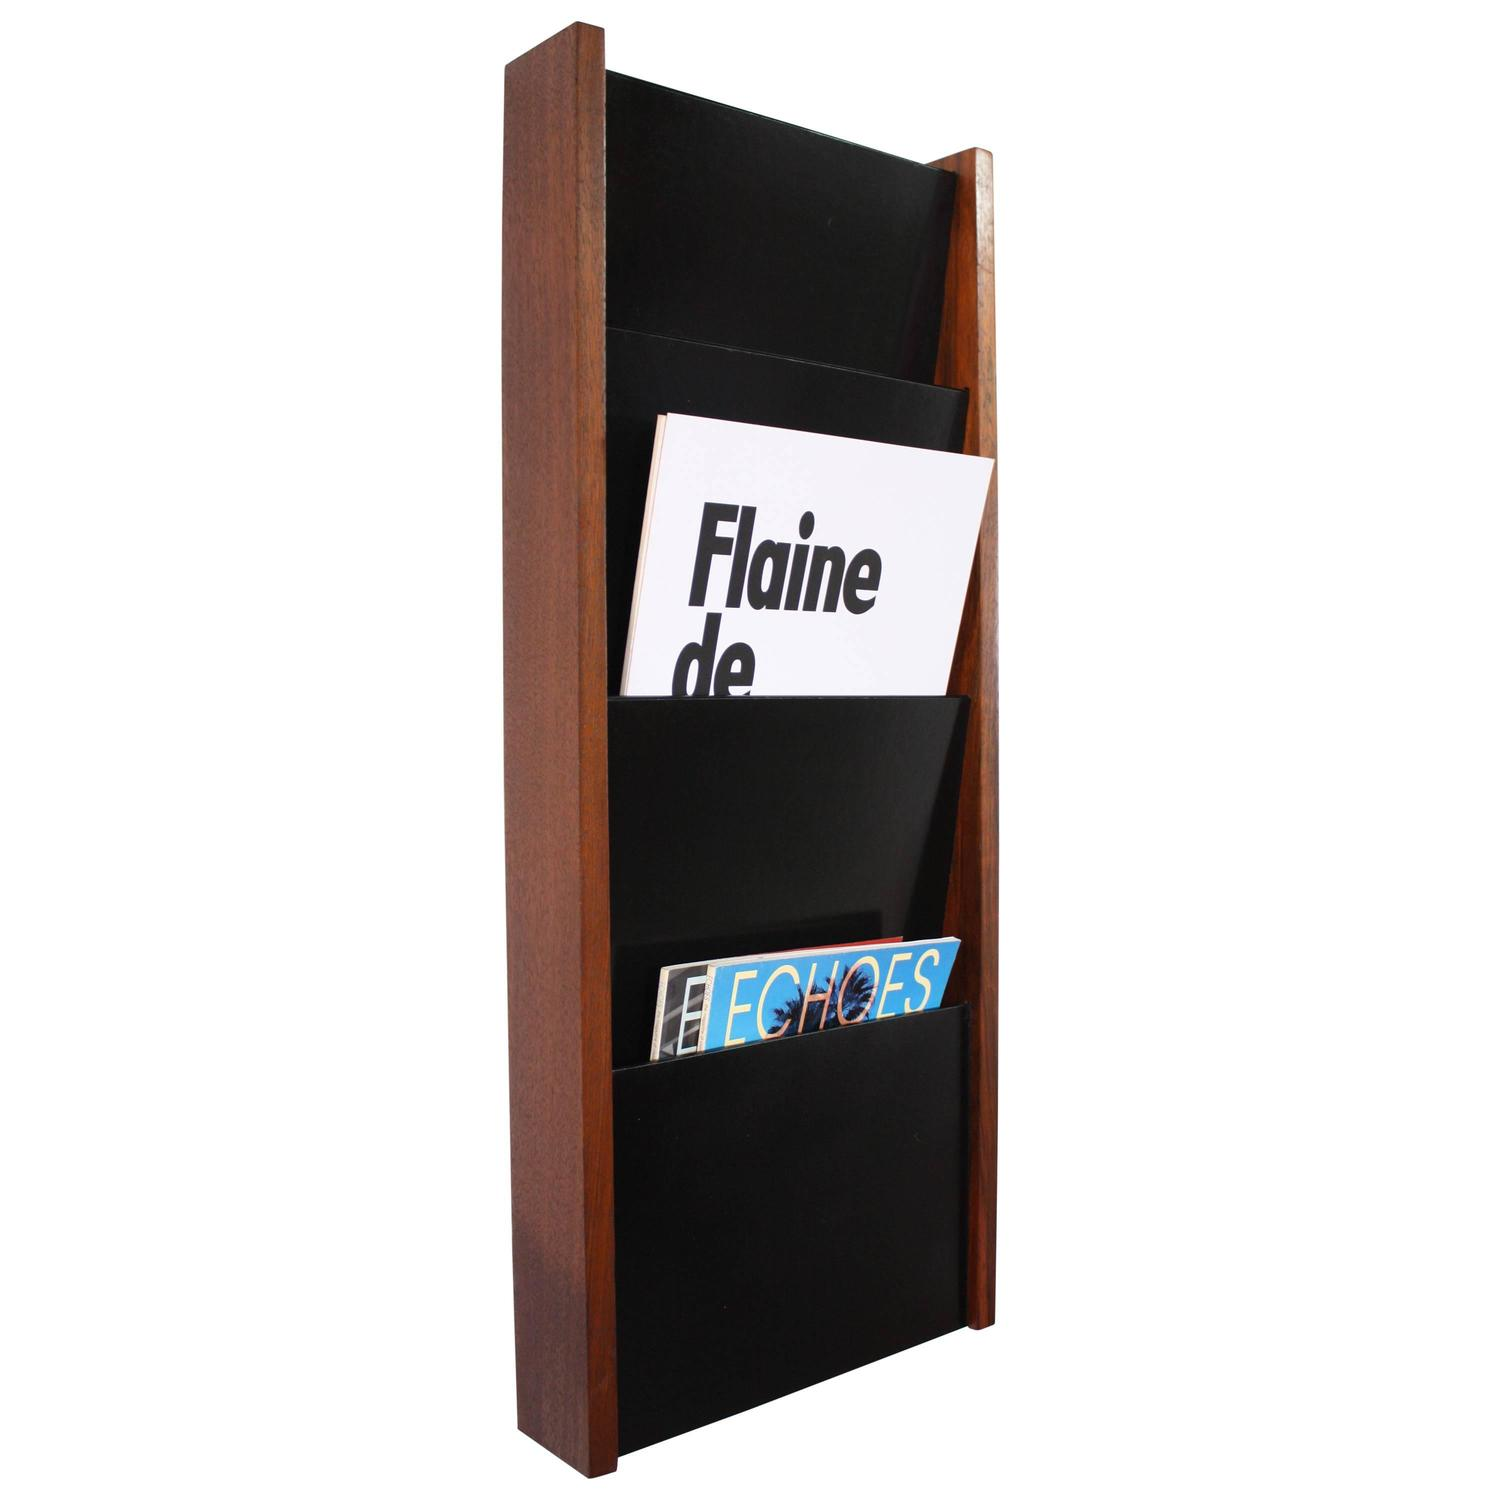 mount white magazine stand holder wall decoration wire rack mounted metal wooden shelf